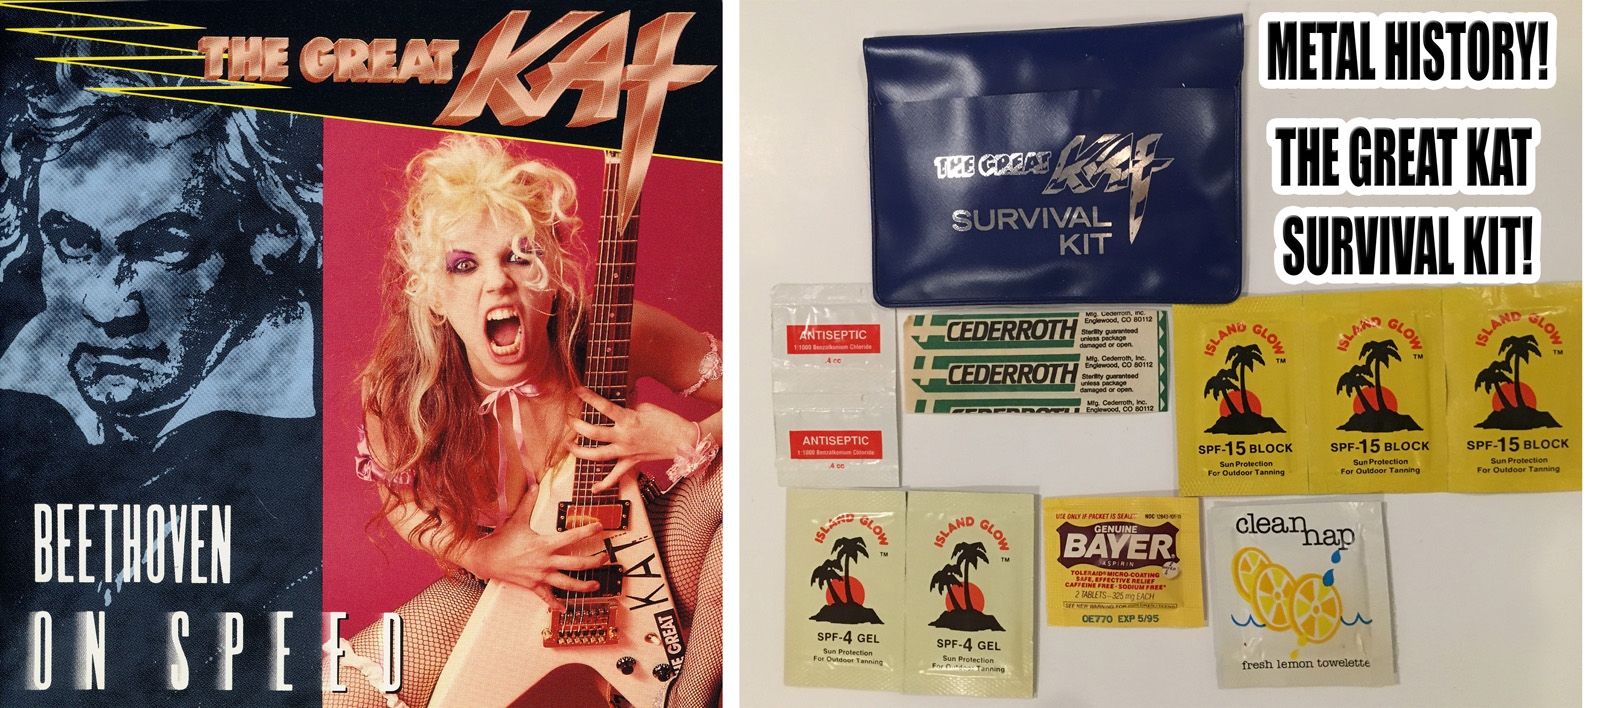 "METAL HISTORY! THE GREAT KAT SURVIVAL KIT! From ""BEETHOVEN ON SPEED""!"